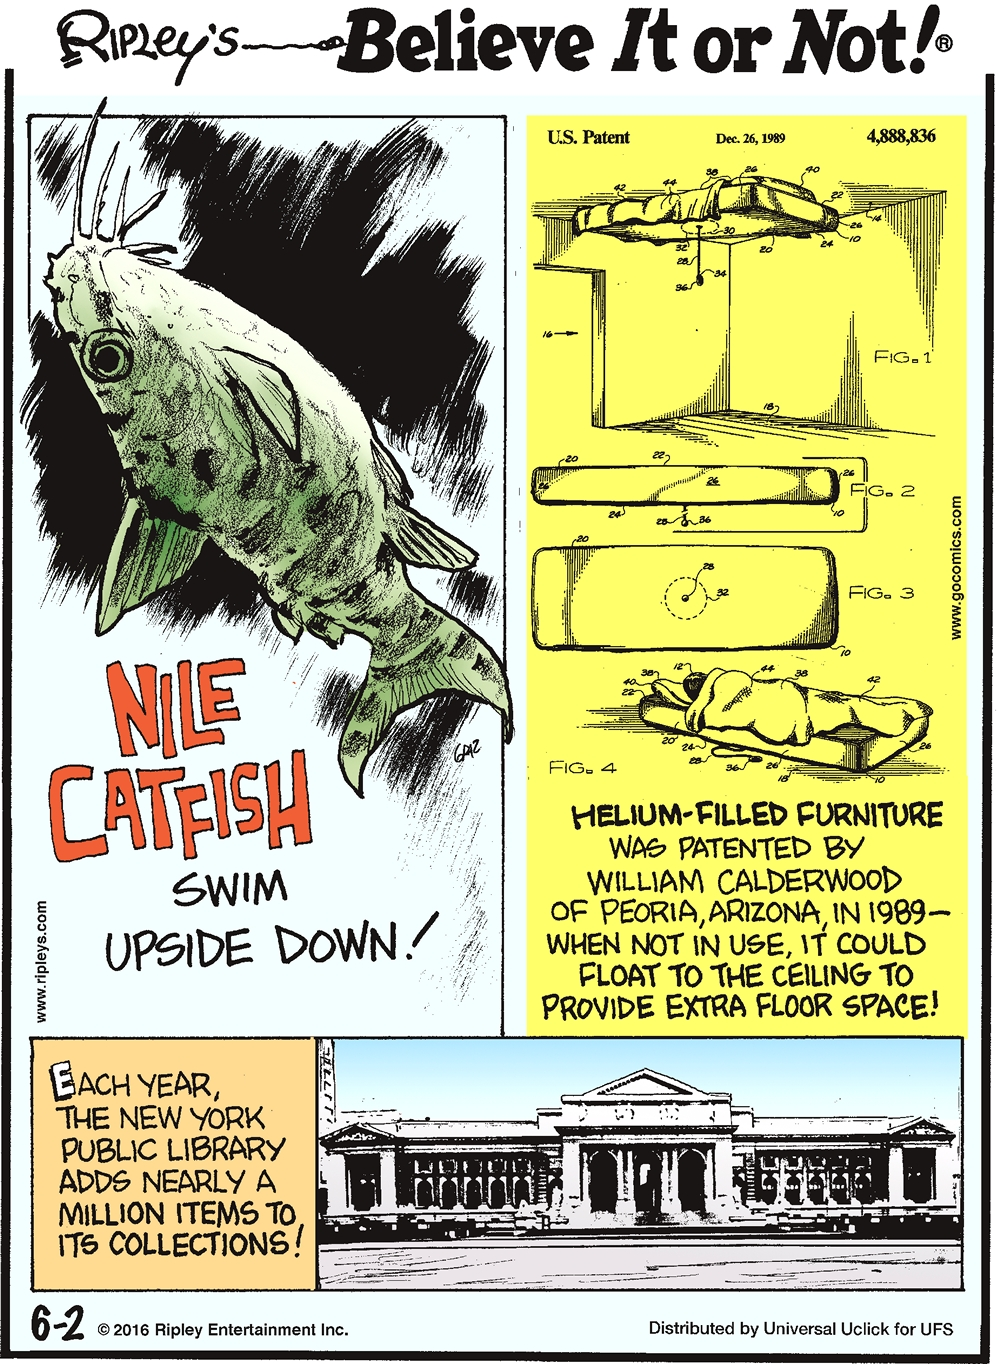 Nile catfish swim upside down! -------------------- Helium-filled furniture was patented by William Calderwood of Peoria, Arizona, in 1989—when not in use, it could float to the ceiling to provide extra floor space! -------------------- Each year, the New York Public Library adds nearly a million items to its collection!